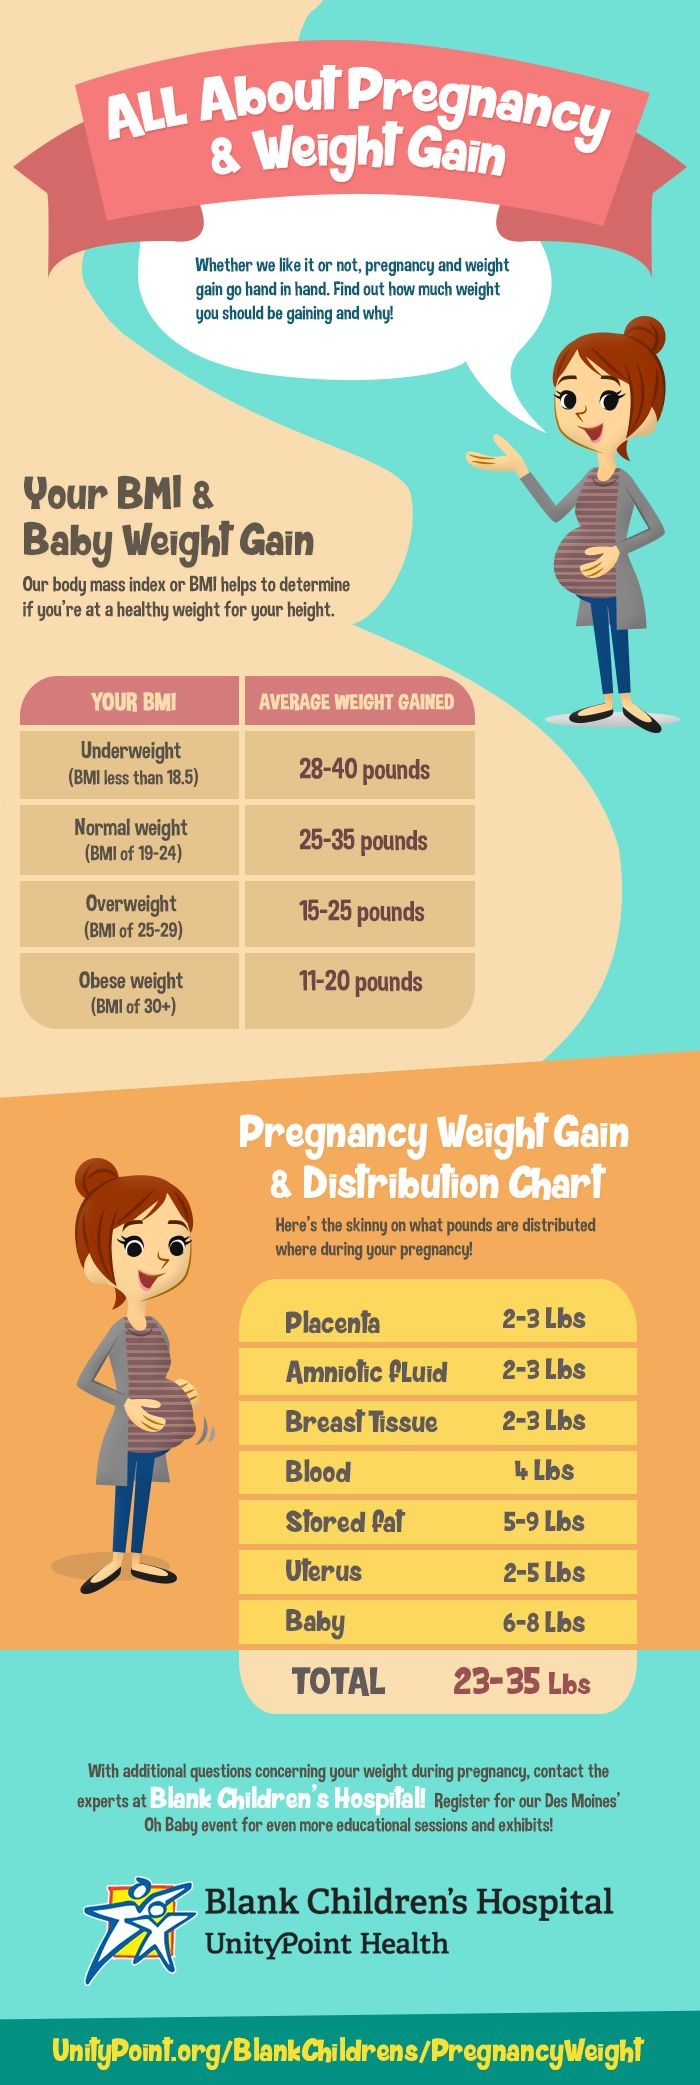 All About Pregnancy & Weight Gain (Infographic) : Find out what's considered healthy when it comes to pregnancy and weight gain with the help of this infographic!